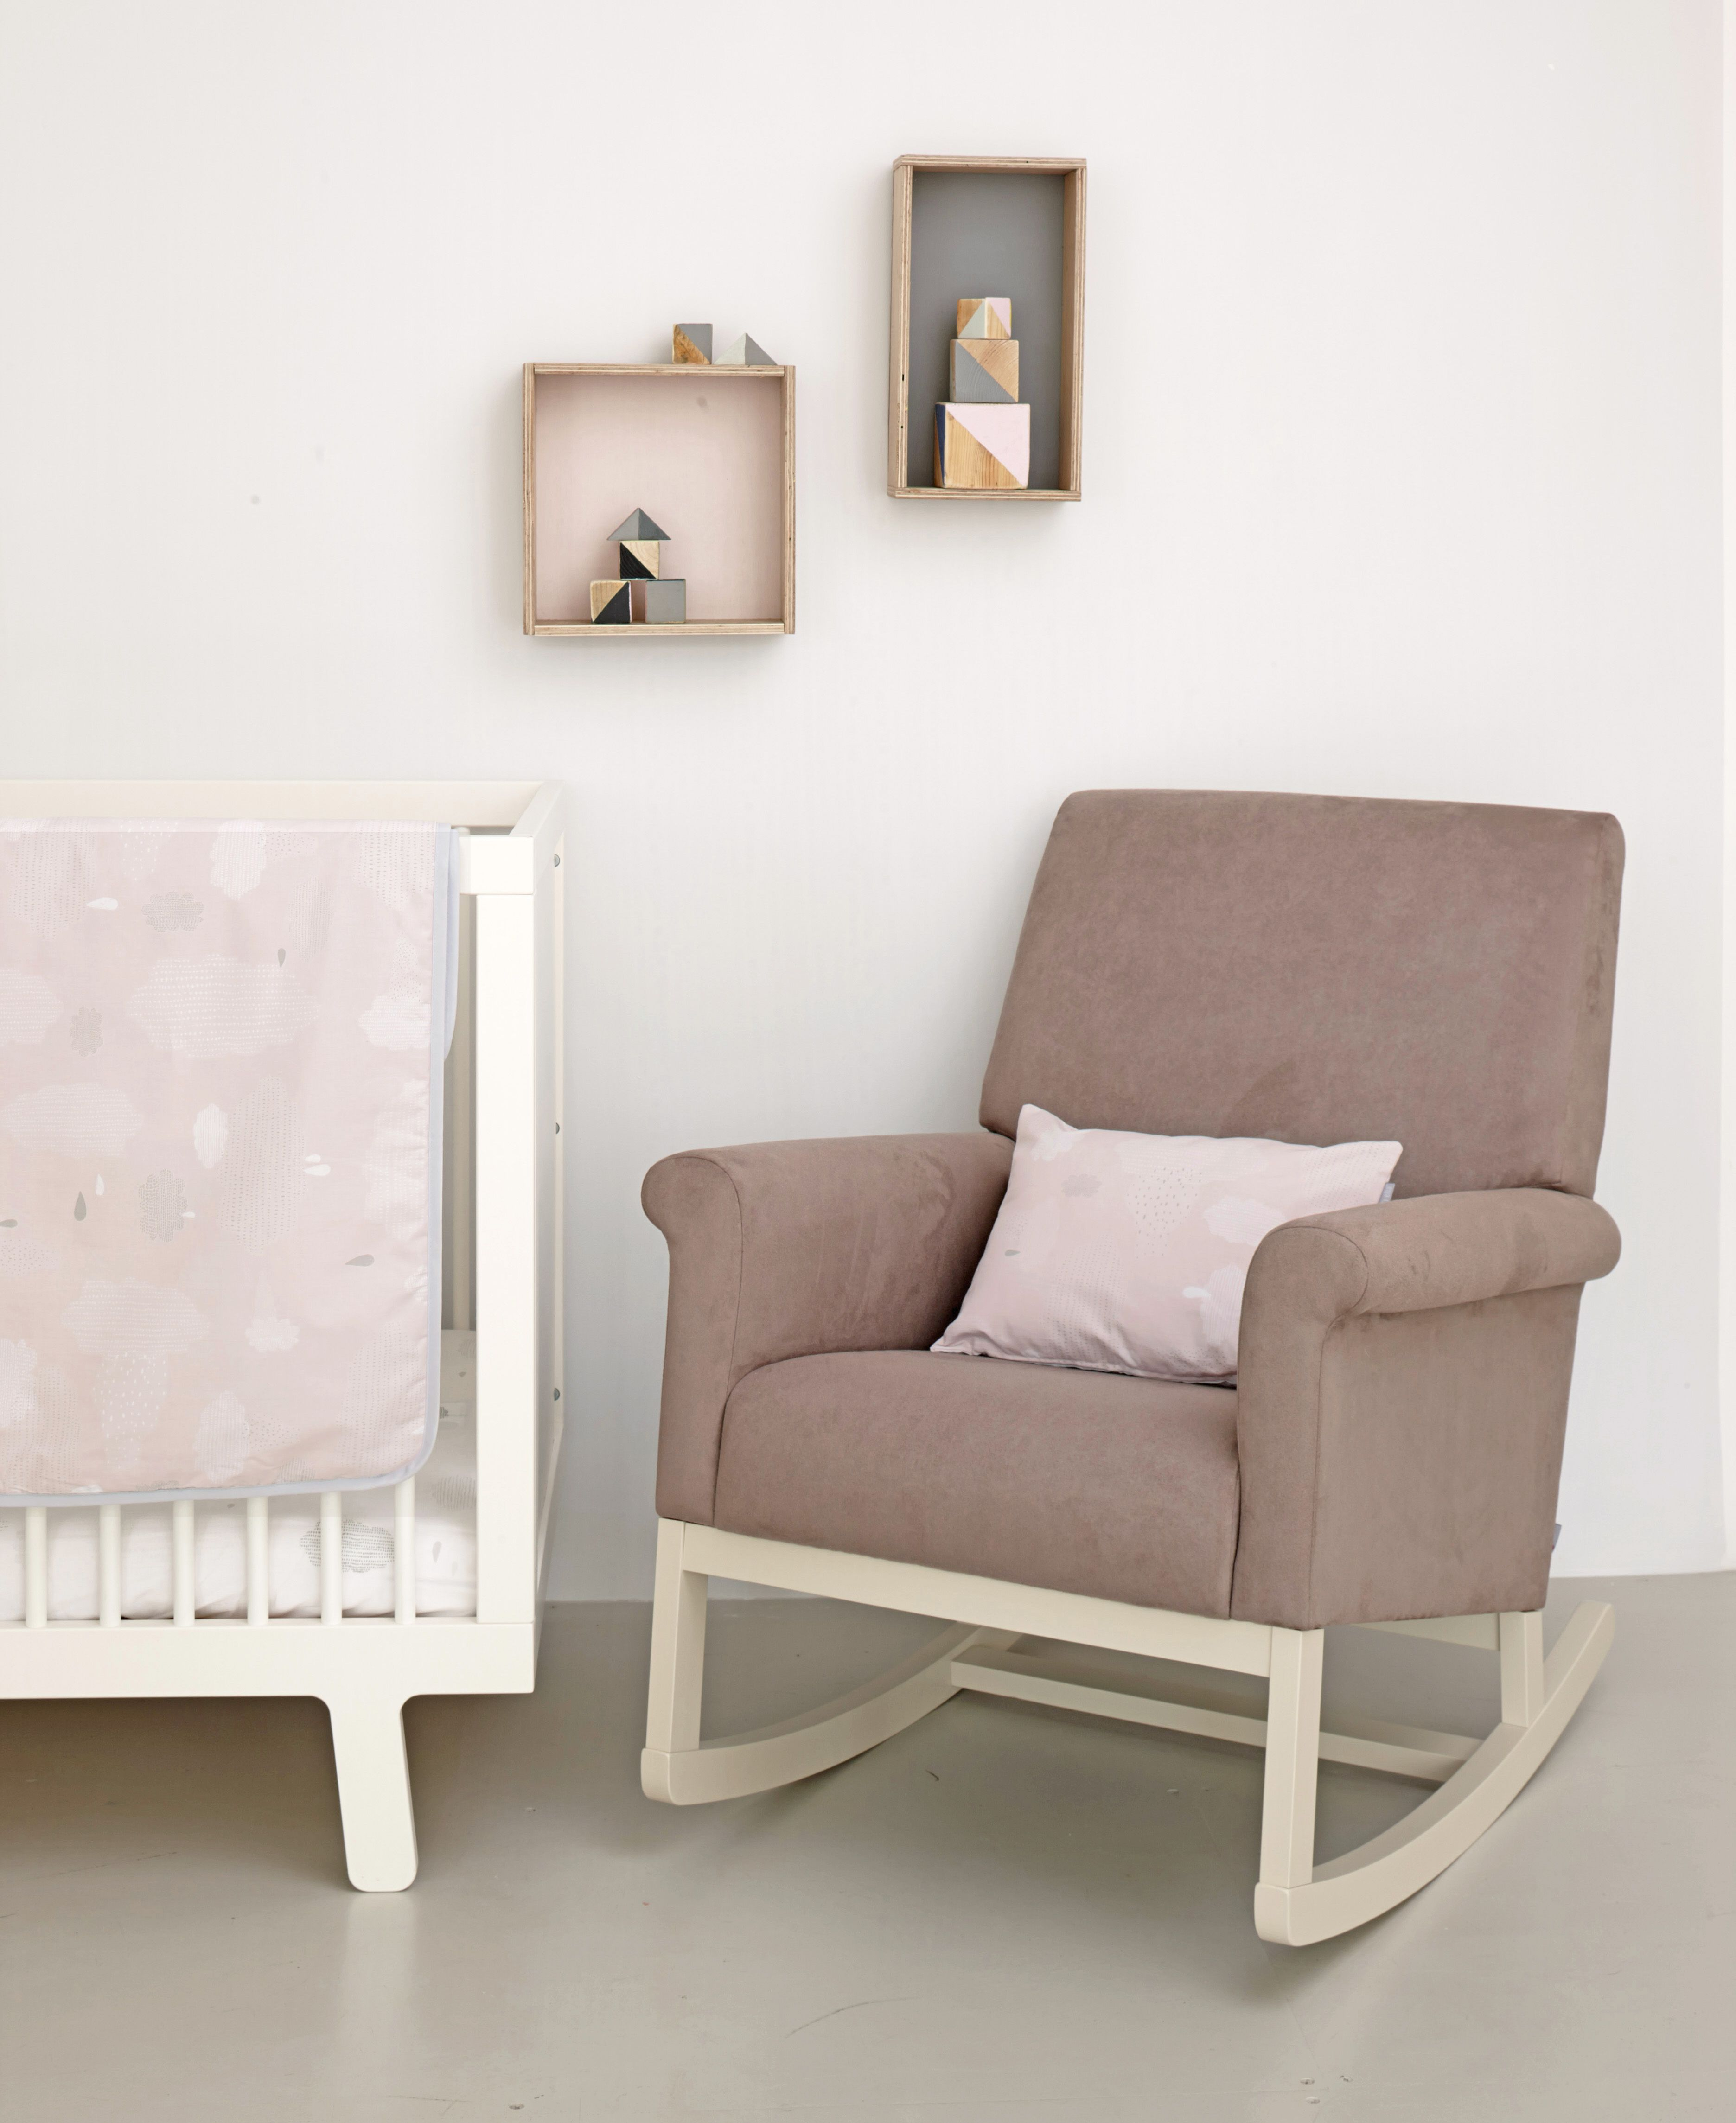 Olli Ella Roki Rocking Chair In Musk With Pitter Patter Bedding Lovely Stylish Nursing